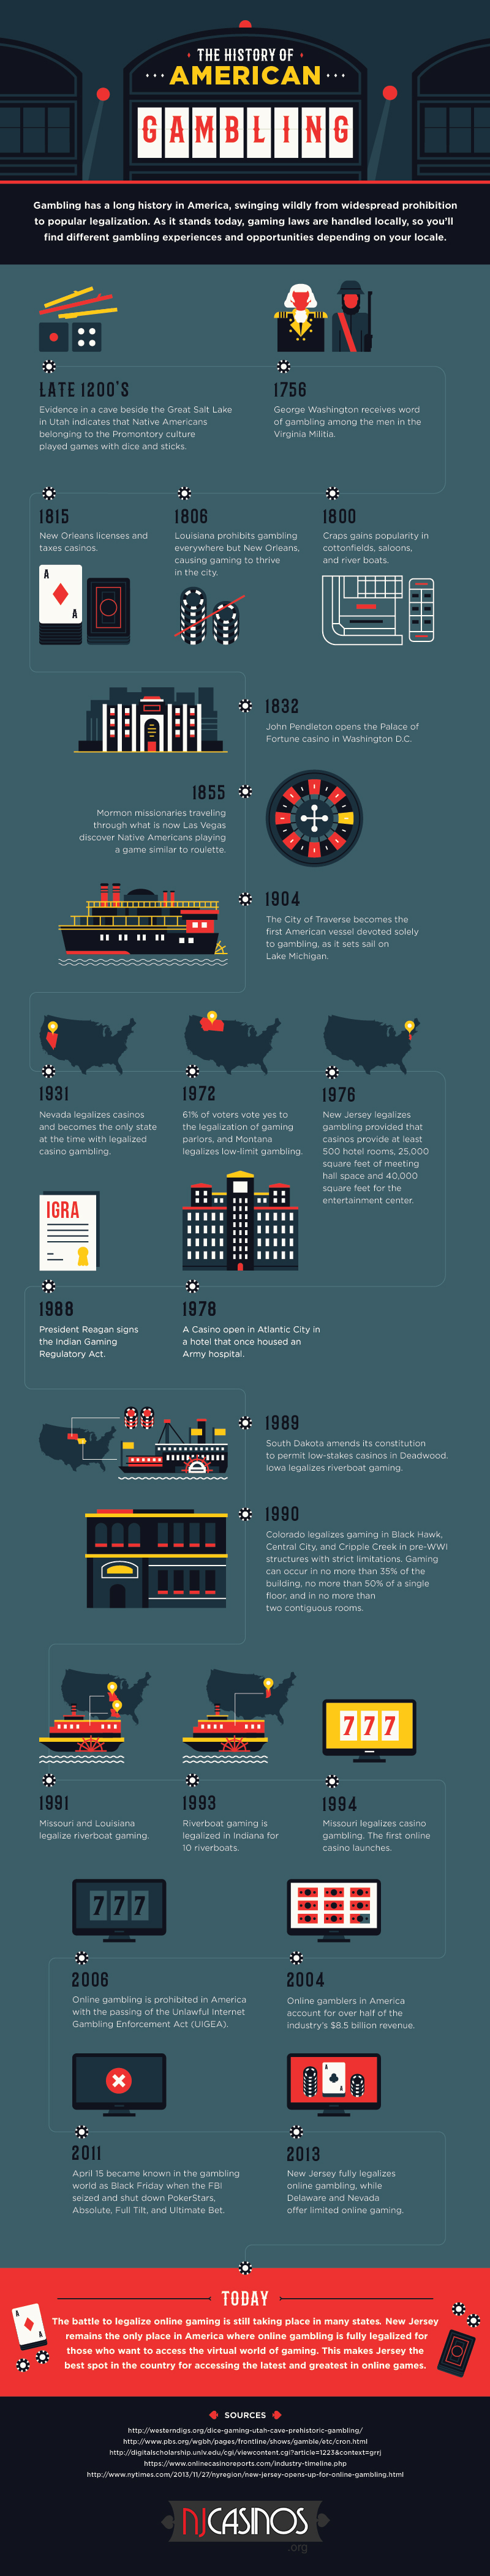 Infographic: The History of Gambling in the United States